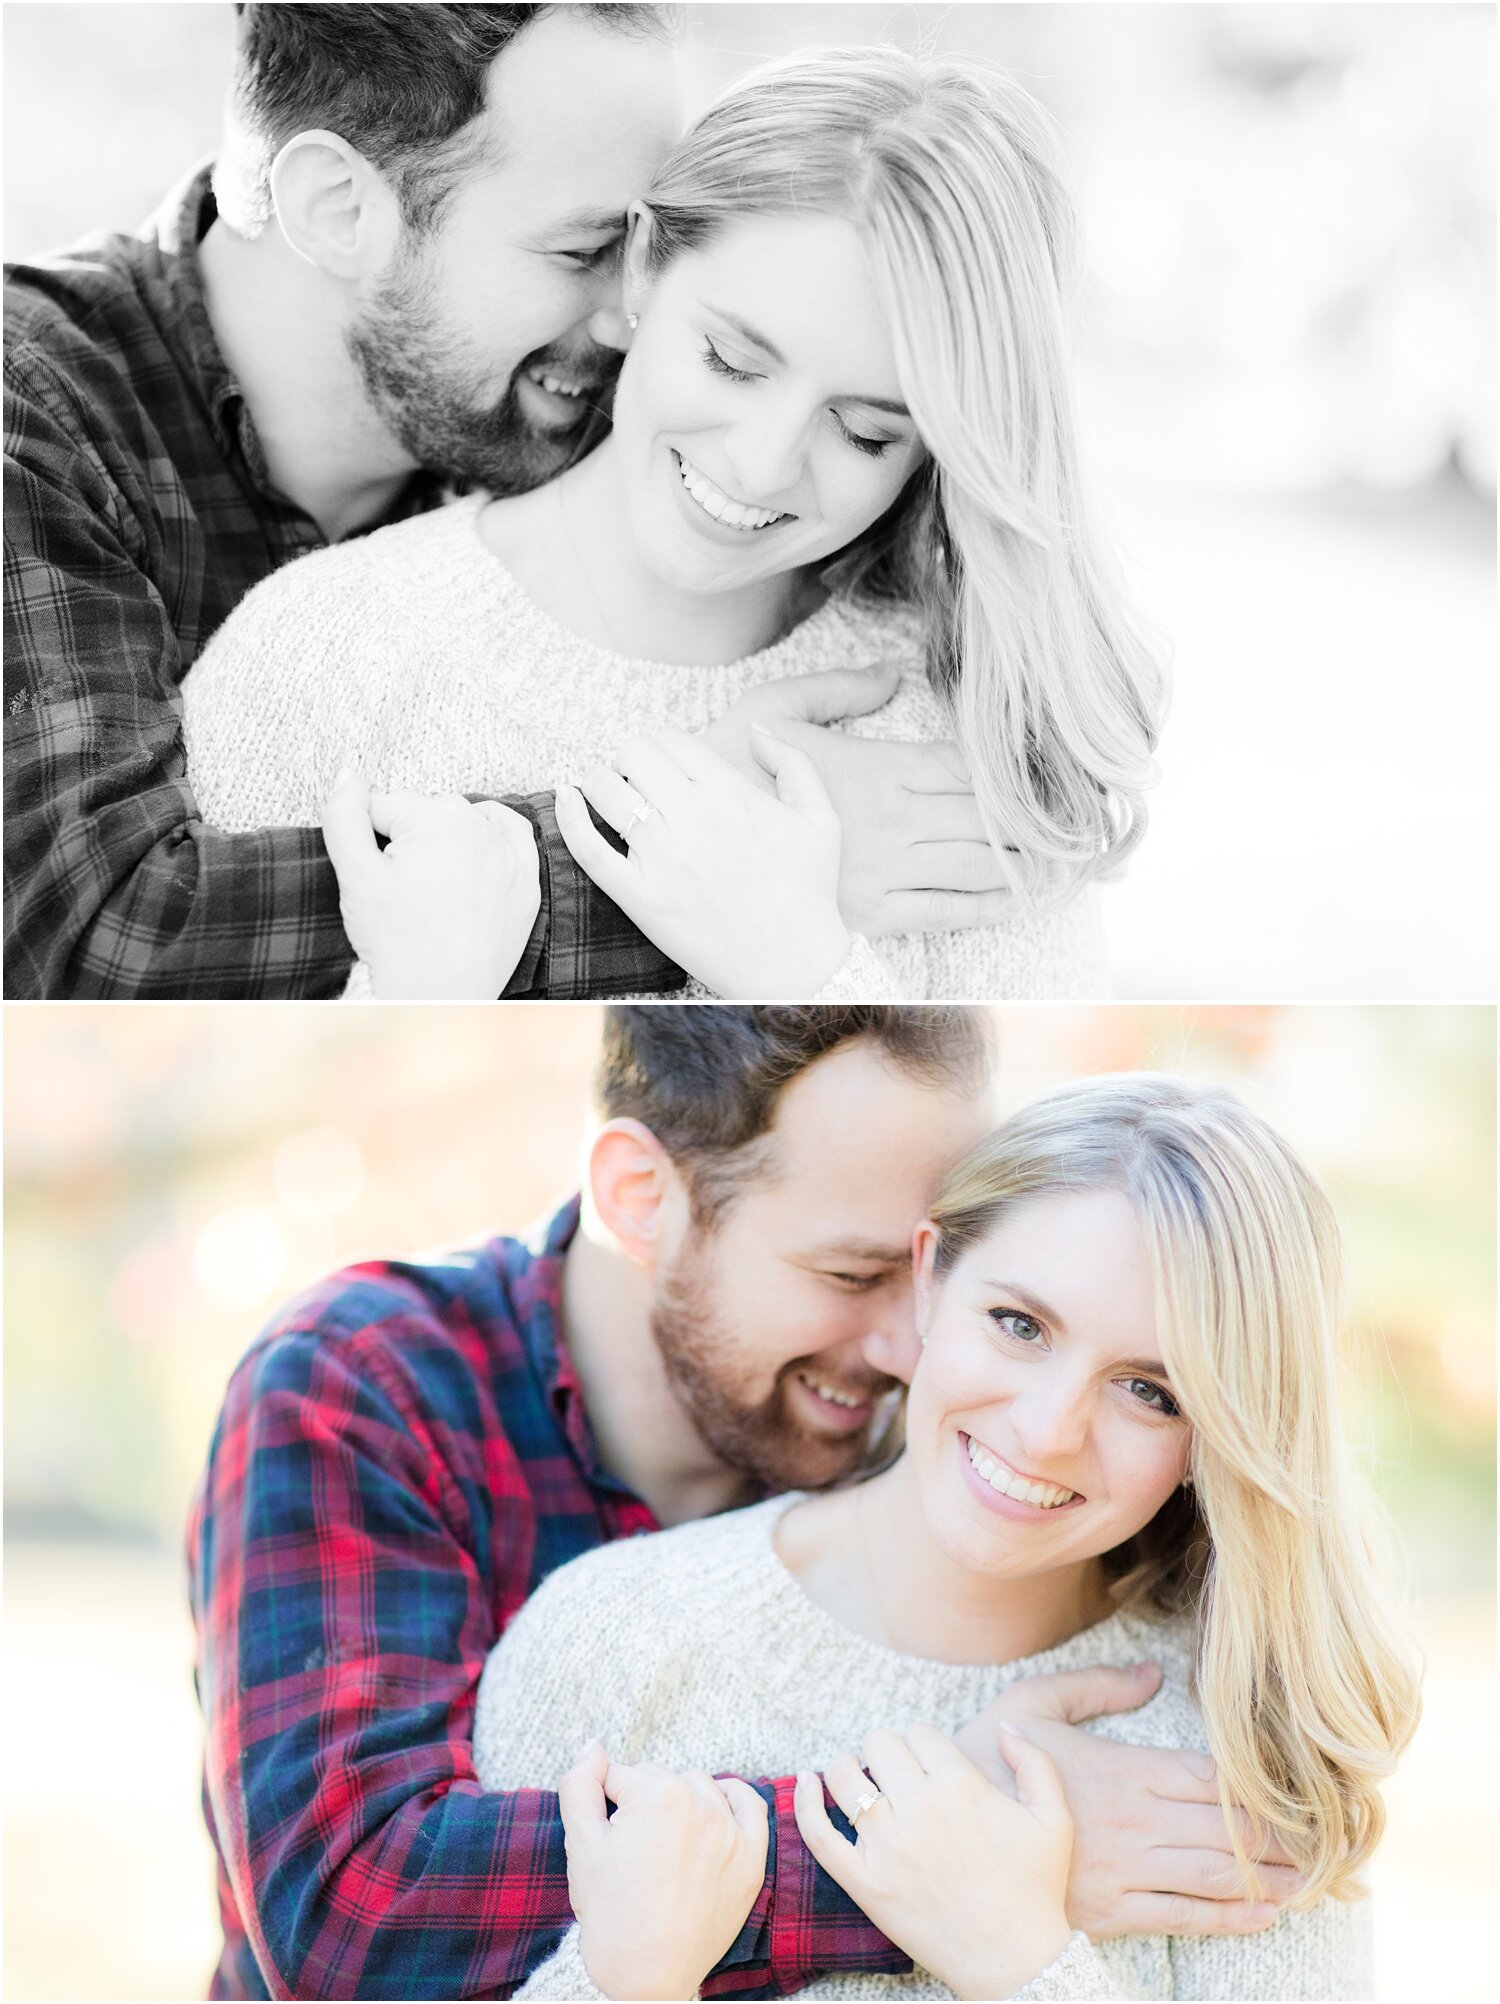 Romantic fall engagement in Spring Lake, NJ.